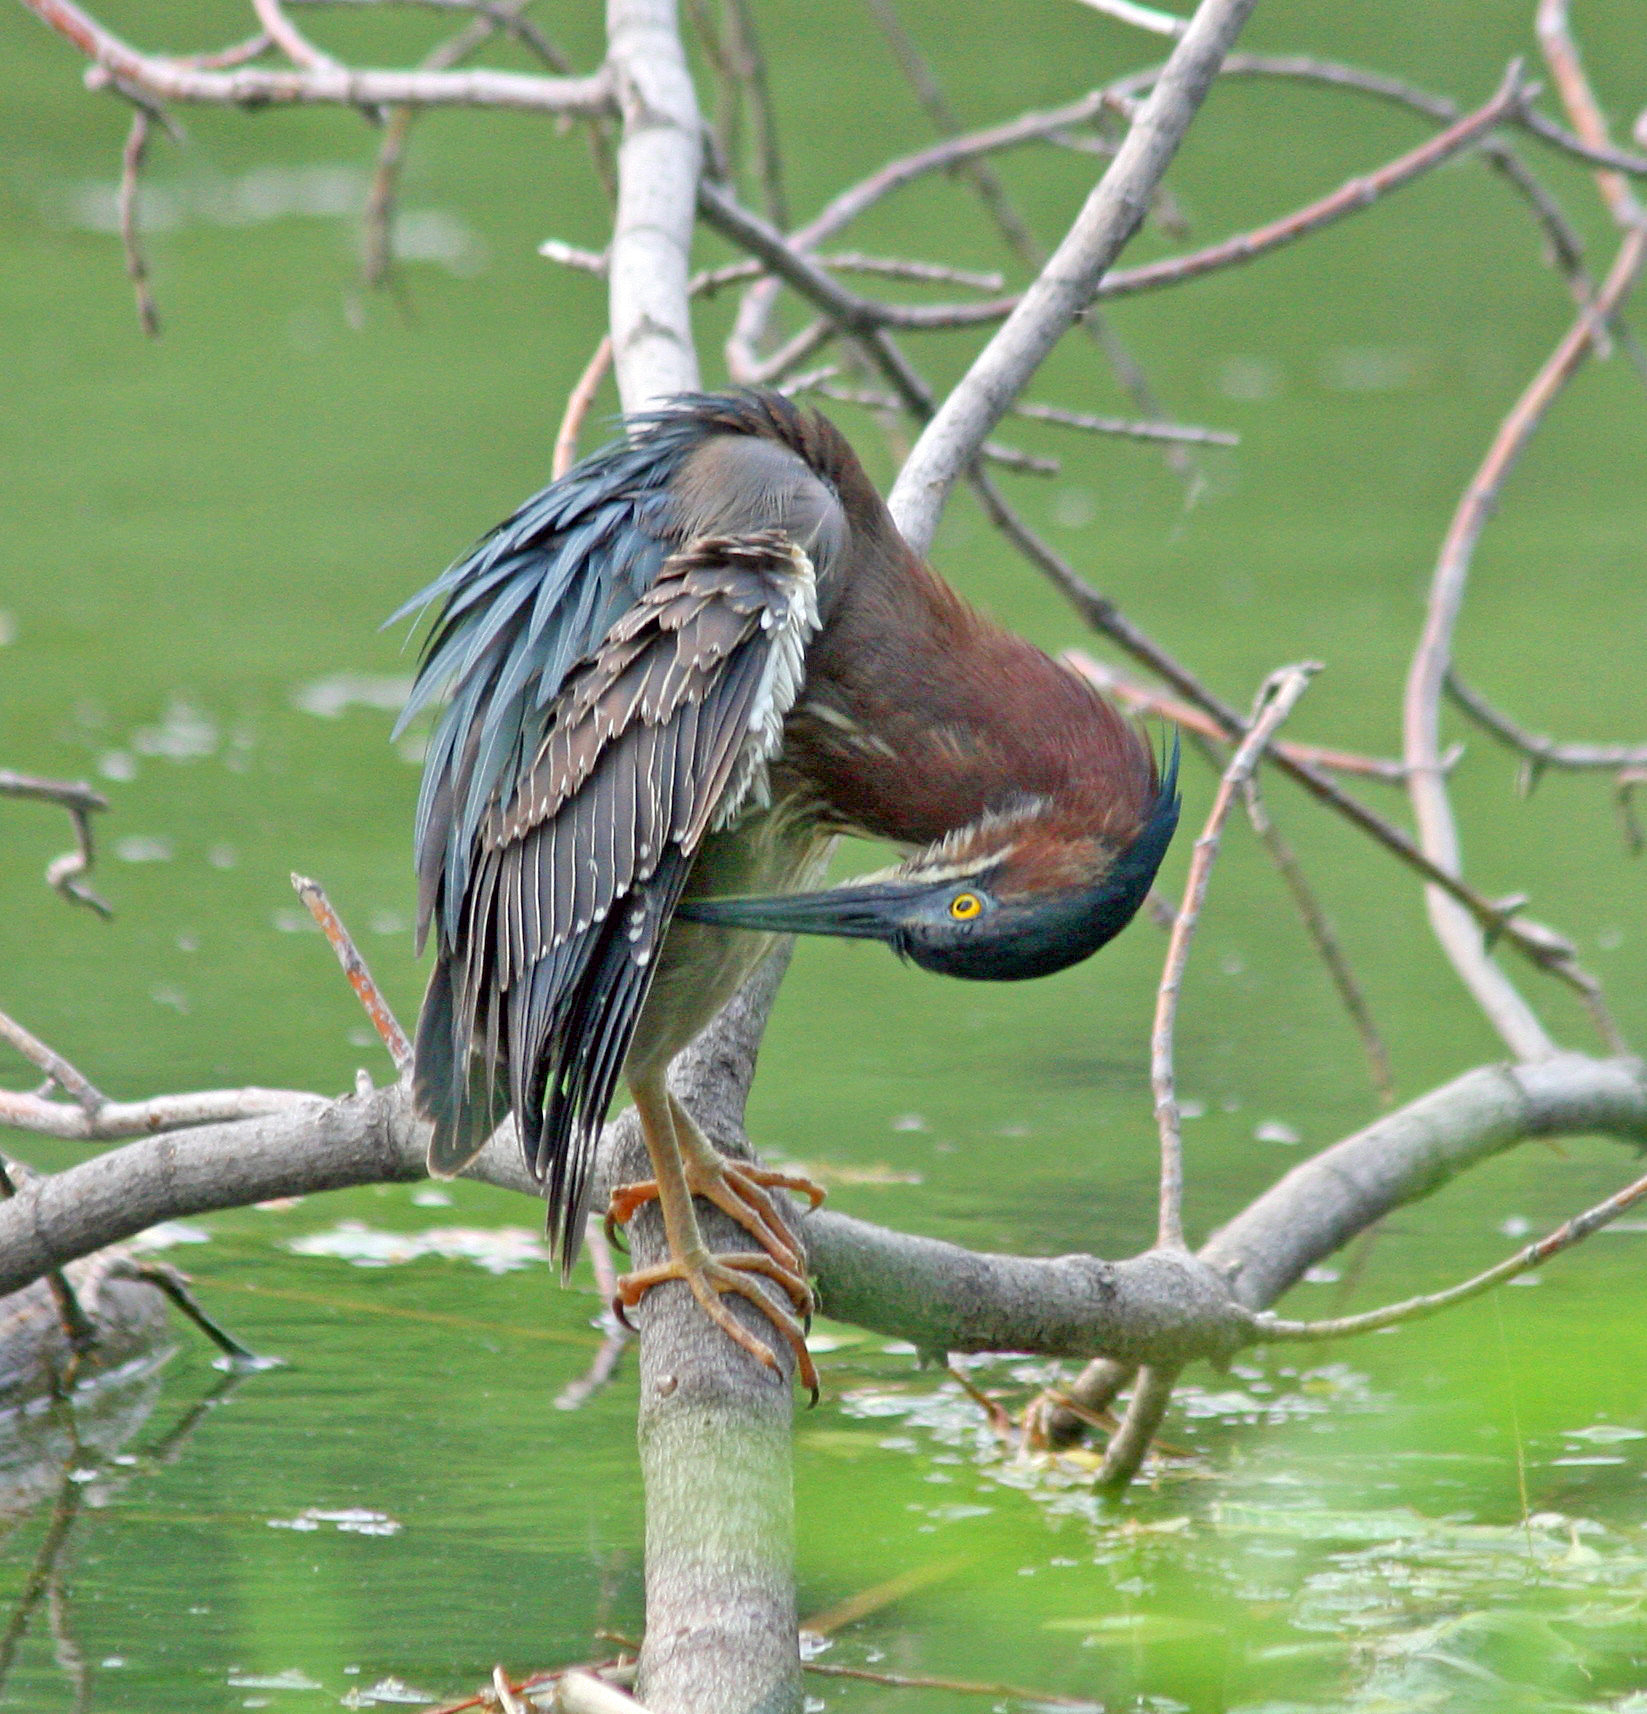 A green heron sits on a branch preening